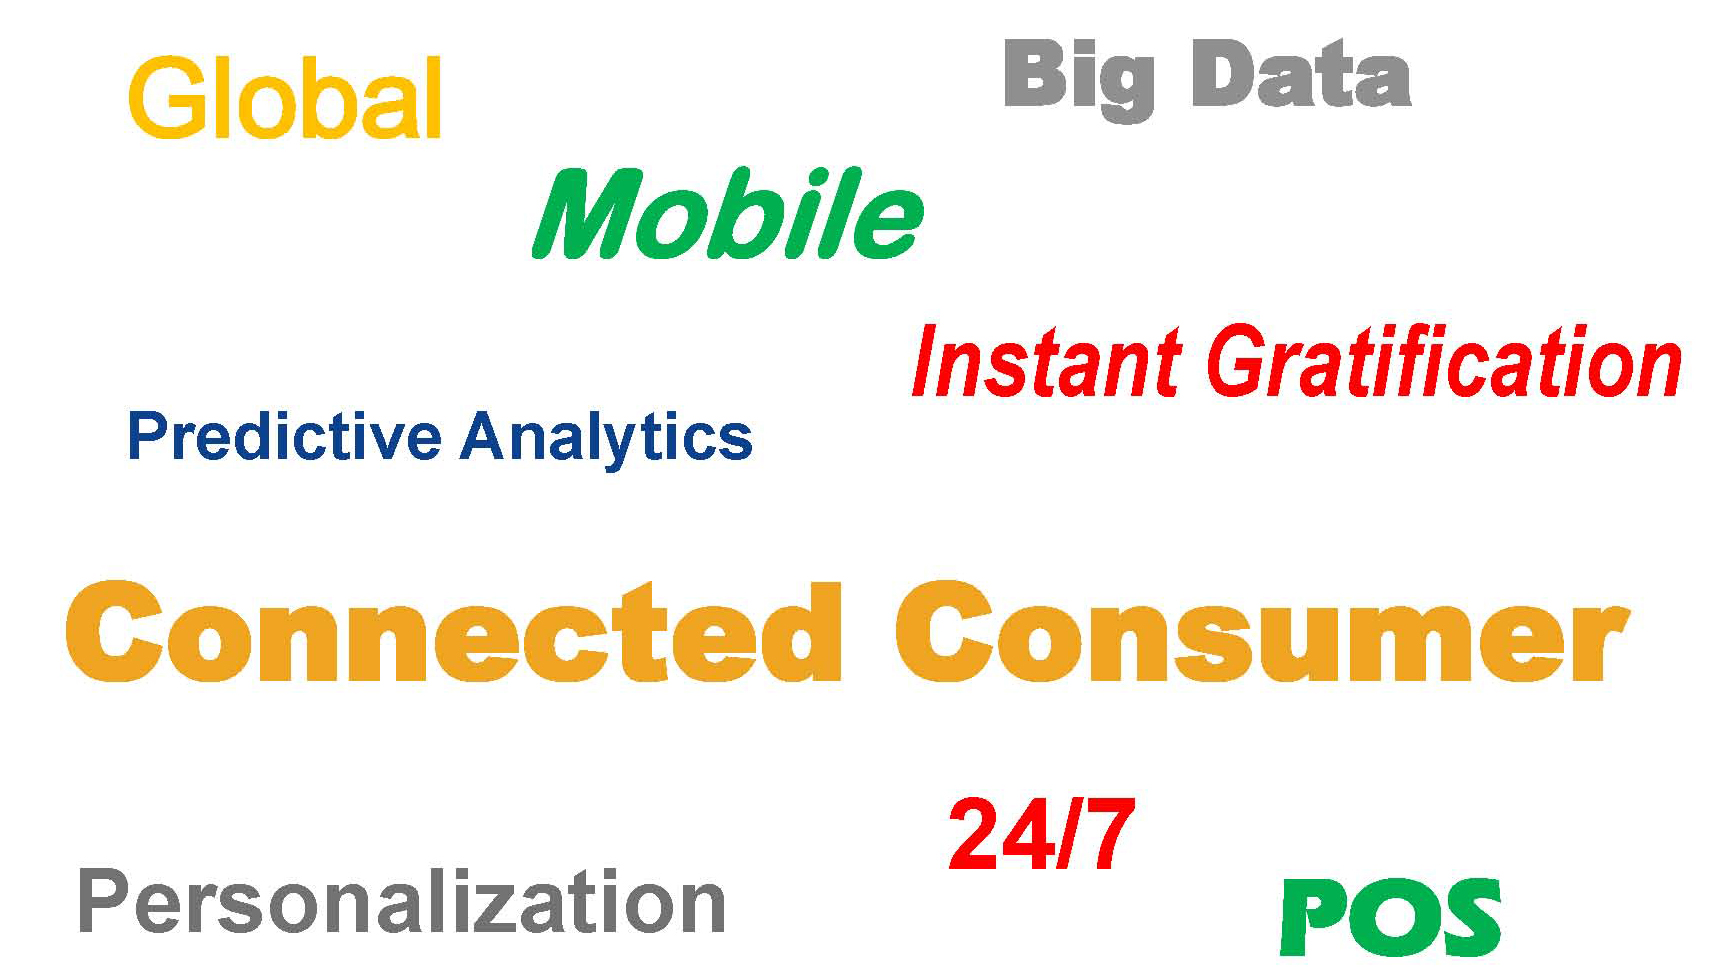 Slide with global, mobile, big data, connected consumer, 24/7, POS, personalization, predictive analytics, instant gratification